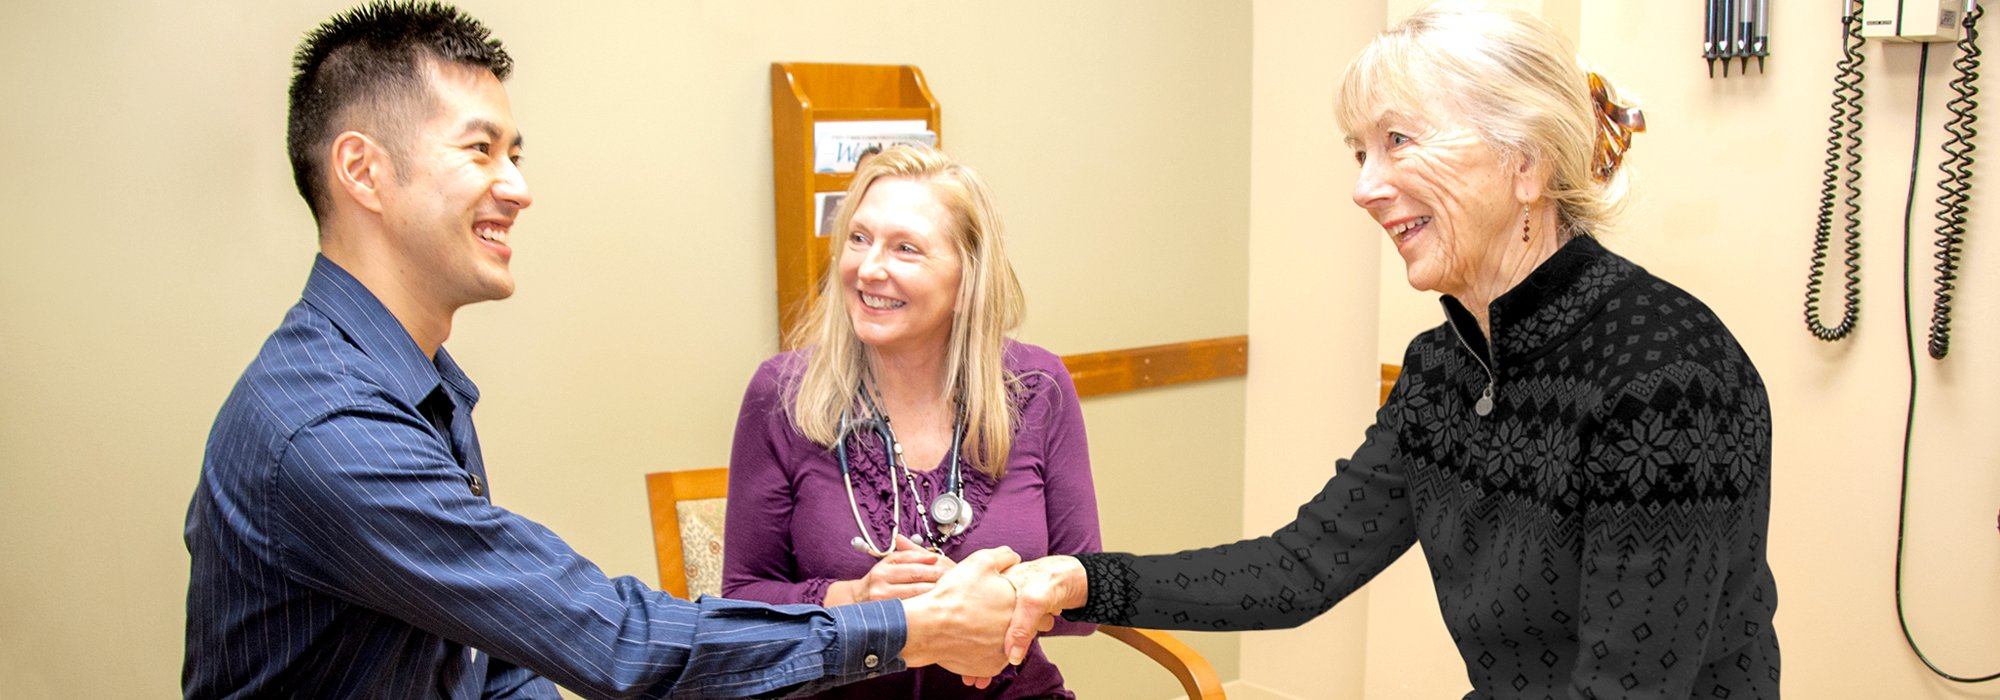 Dr. Maxwell Moholy, Behavioral Health Consultant, with Chronic Care Coordinator Christiane Brown and a patient.